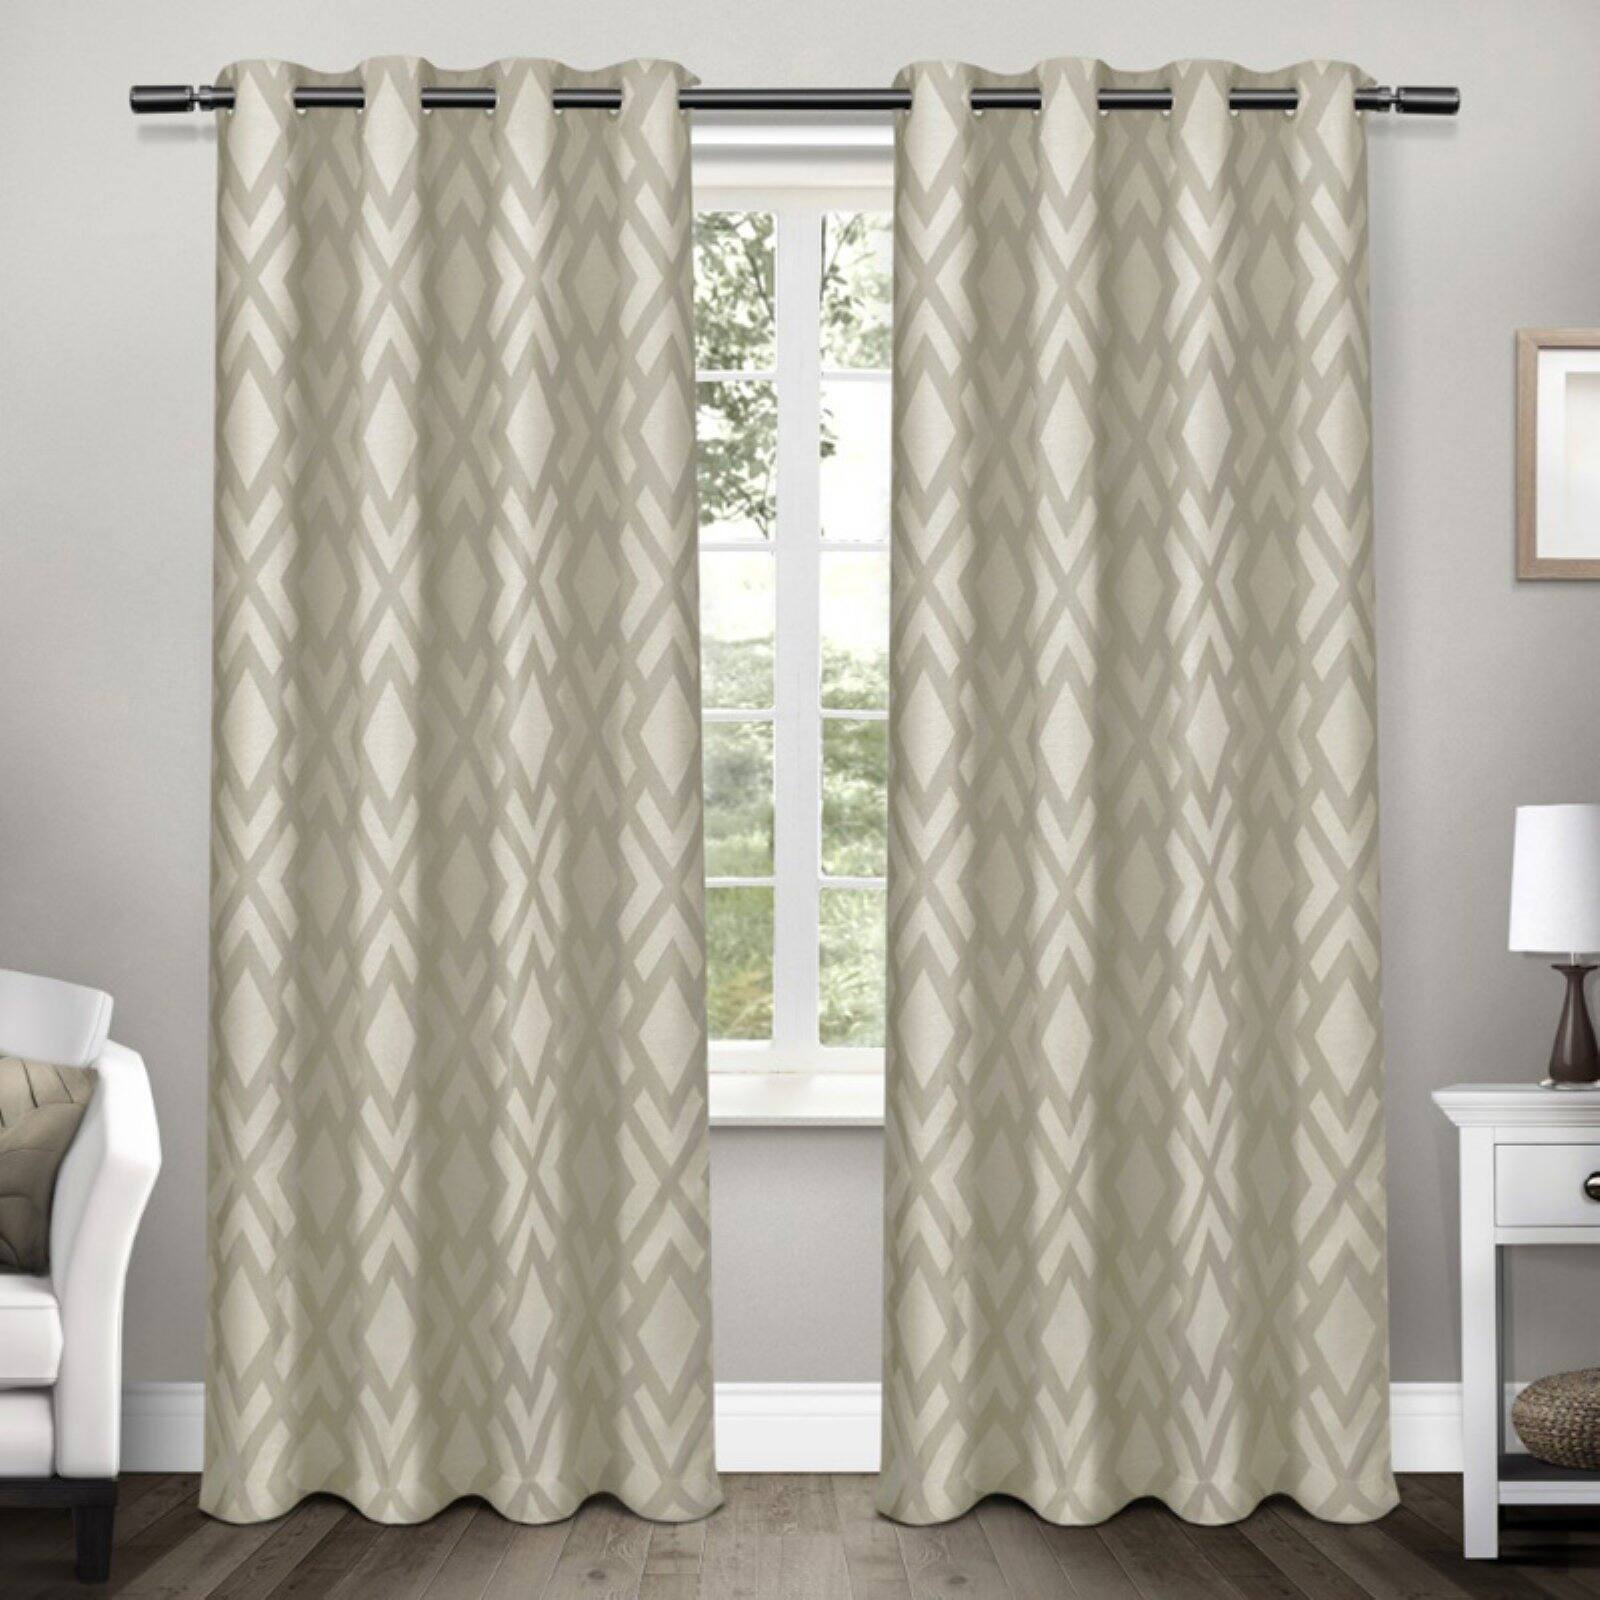 Exclusive Home Curtains 2 Pack Easton Jacquard Blackout Grommet Top Curtain Panels